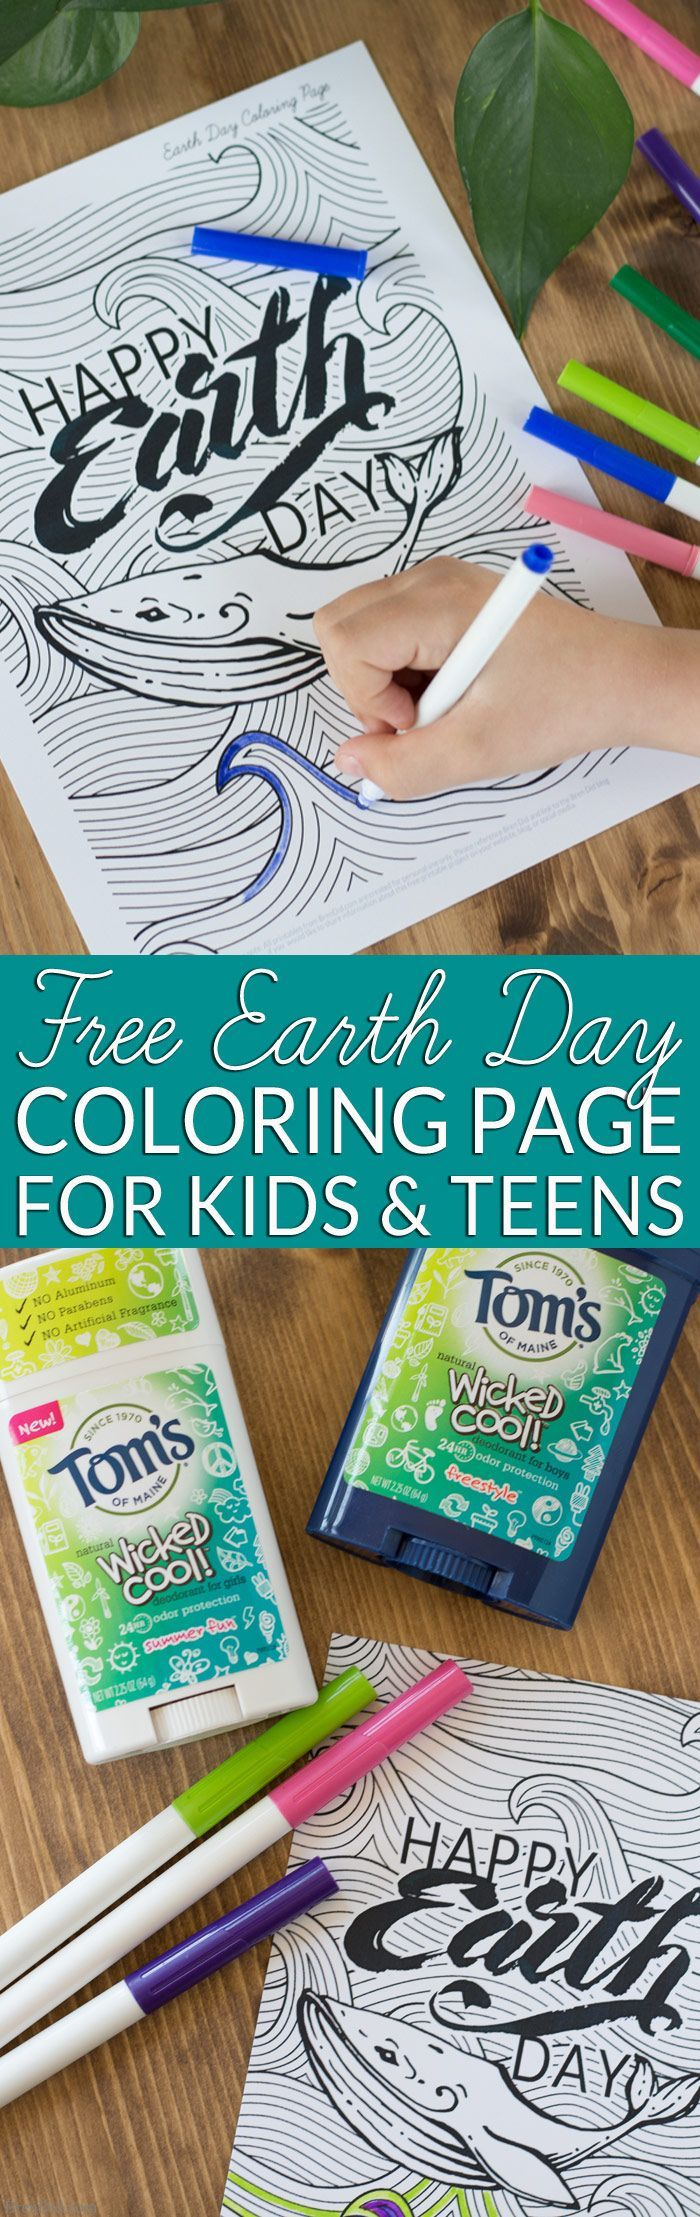 Earth day coloring pages for adults - Earth Day Activity For Kids Free Printable Coloring Page